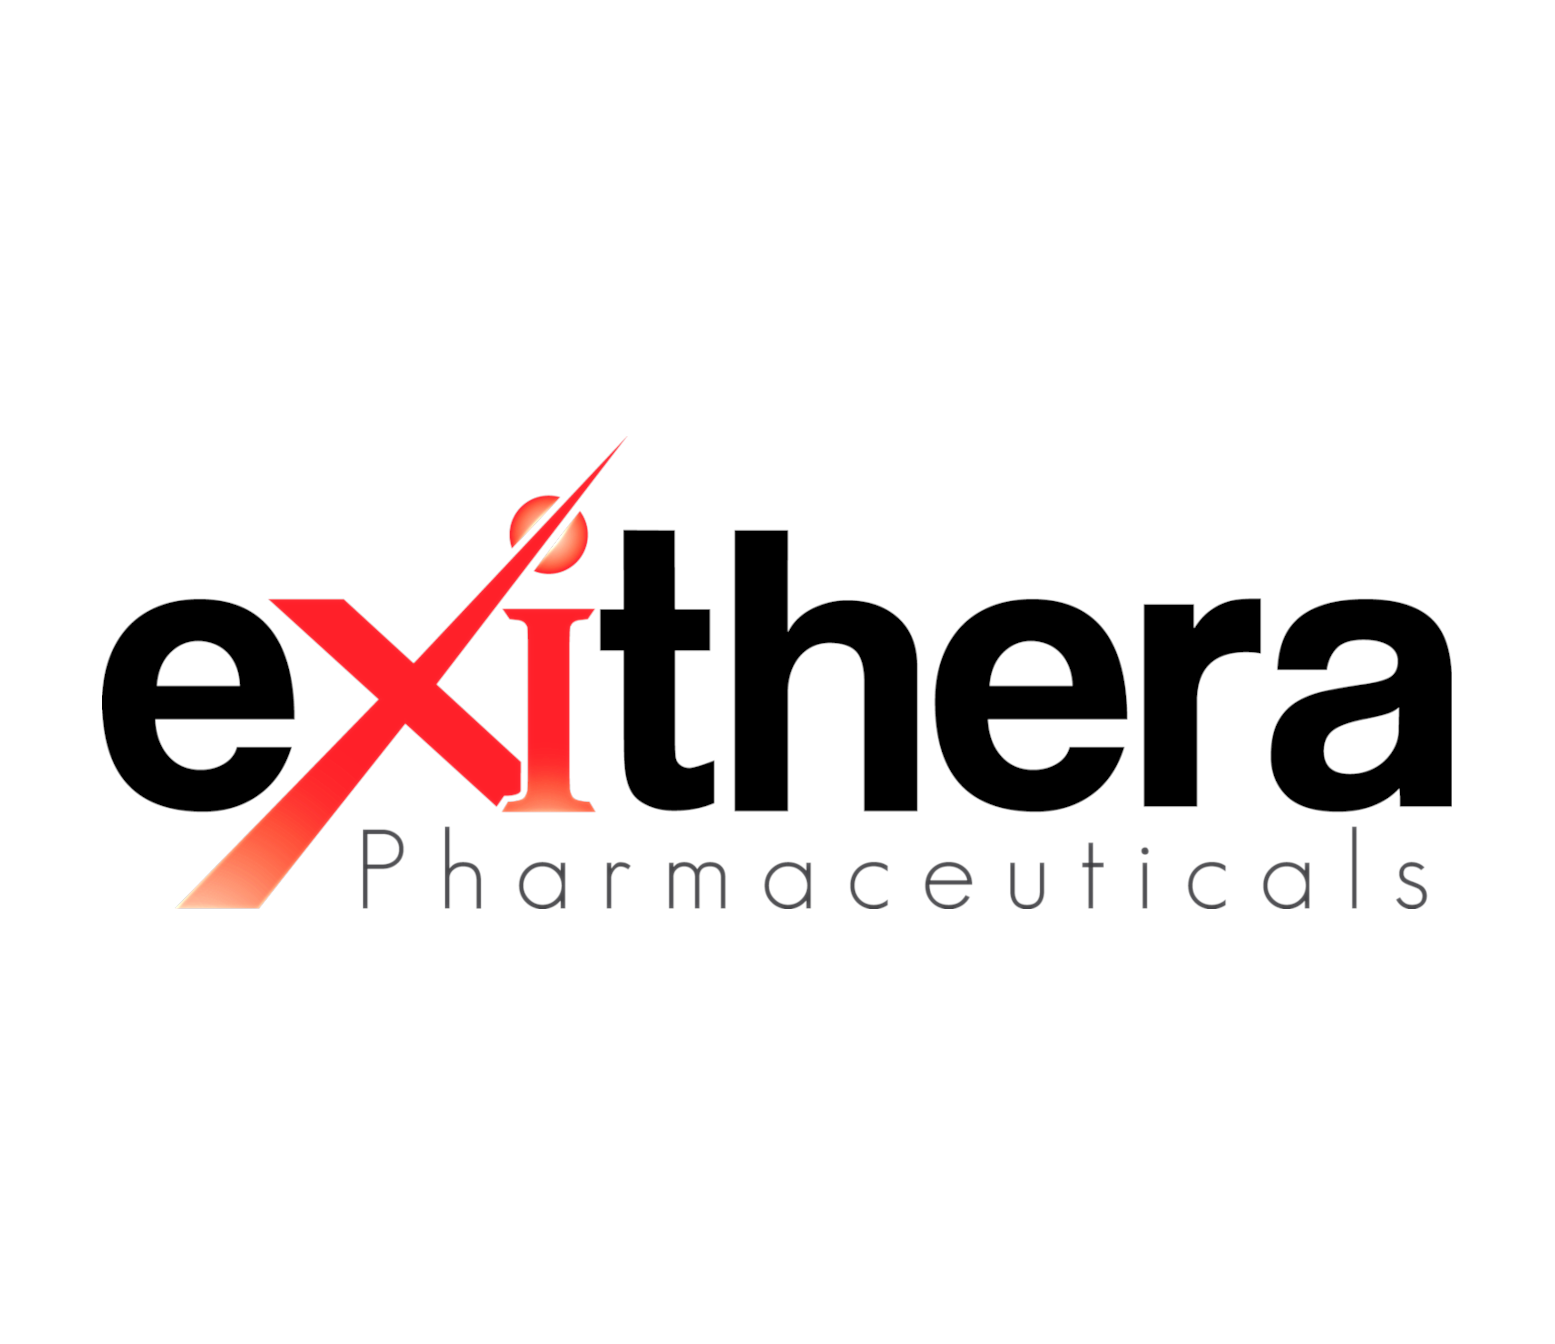 eXIthera is a clinical-stage biotech company developing small molecule drugs for the prevention of thrombosis without increased risk of bleeding.